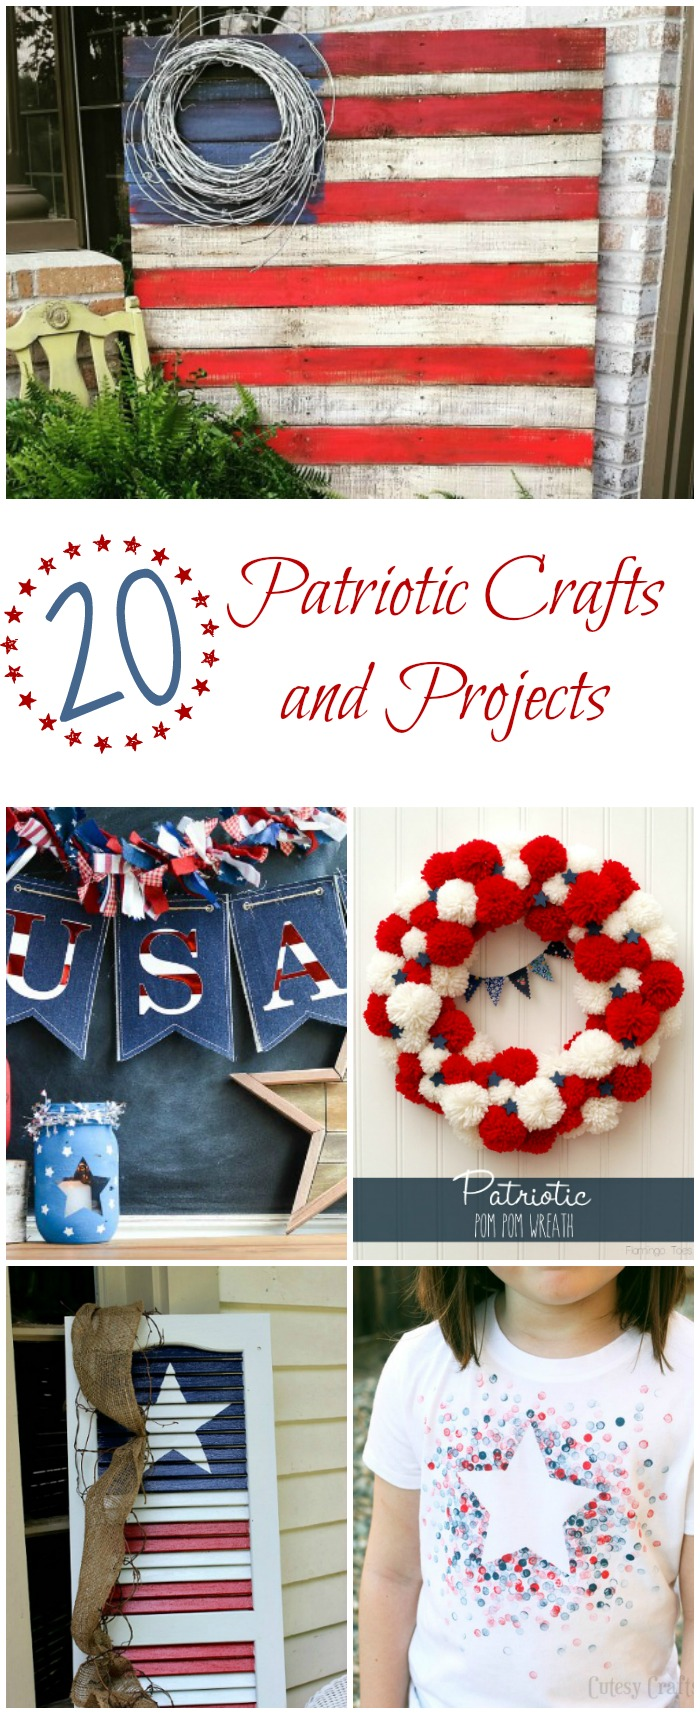 A collection of Patriotic Crafts and Projects perfect for Memorial Day, Independence Day, Veteran's Day or any summer celebration.